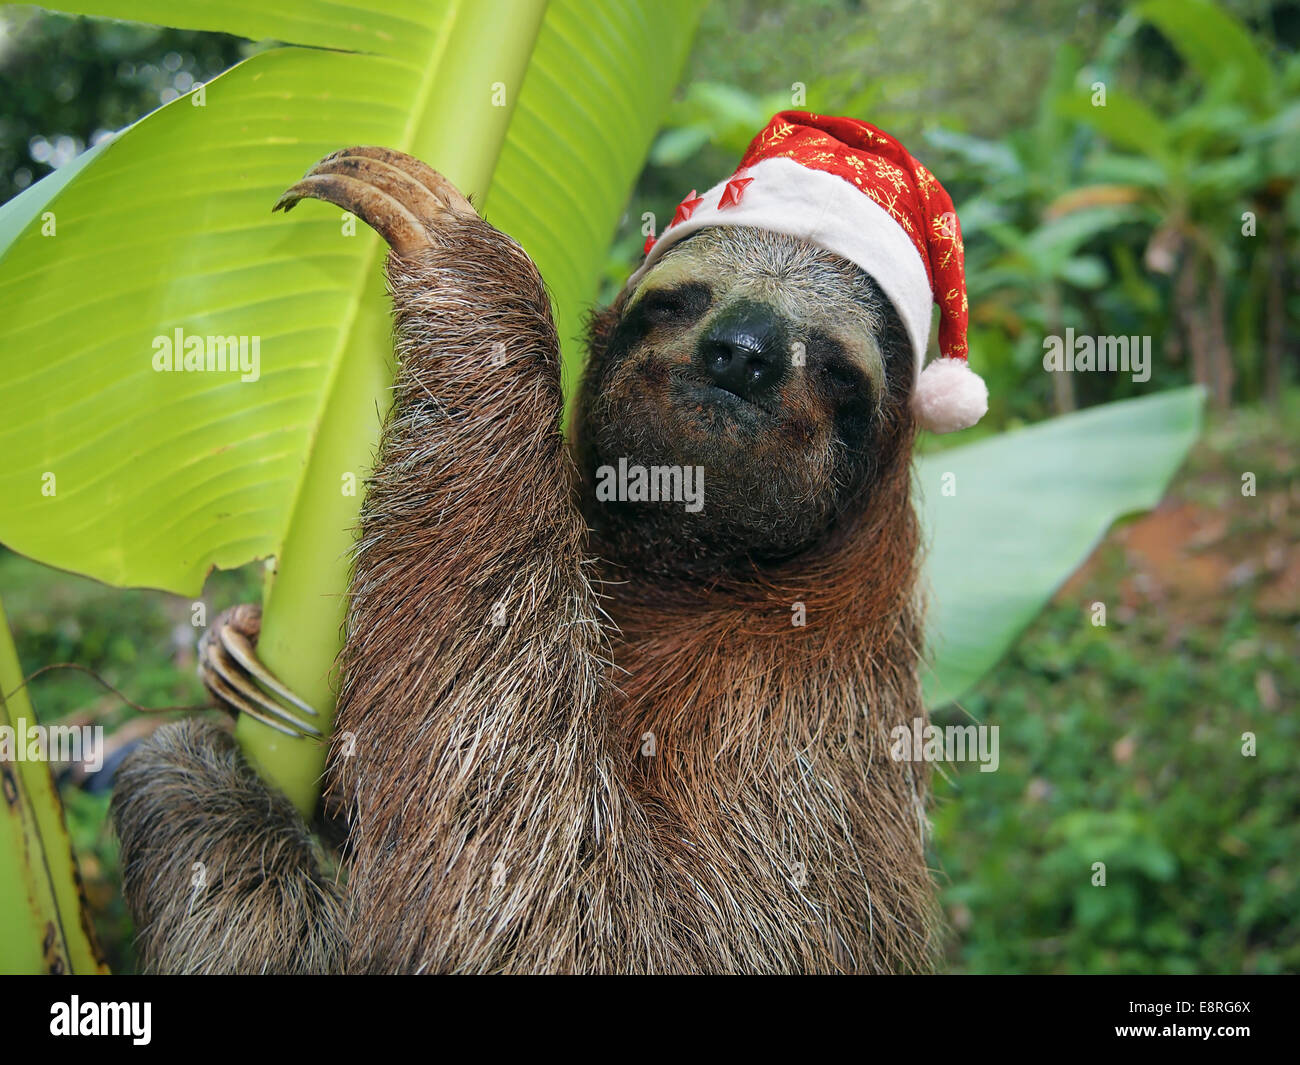 Christmas animal, portrait of a sloth wearing a santa hat, Costa Rica - Stock Image